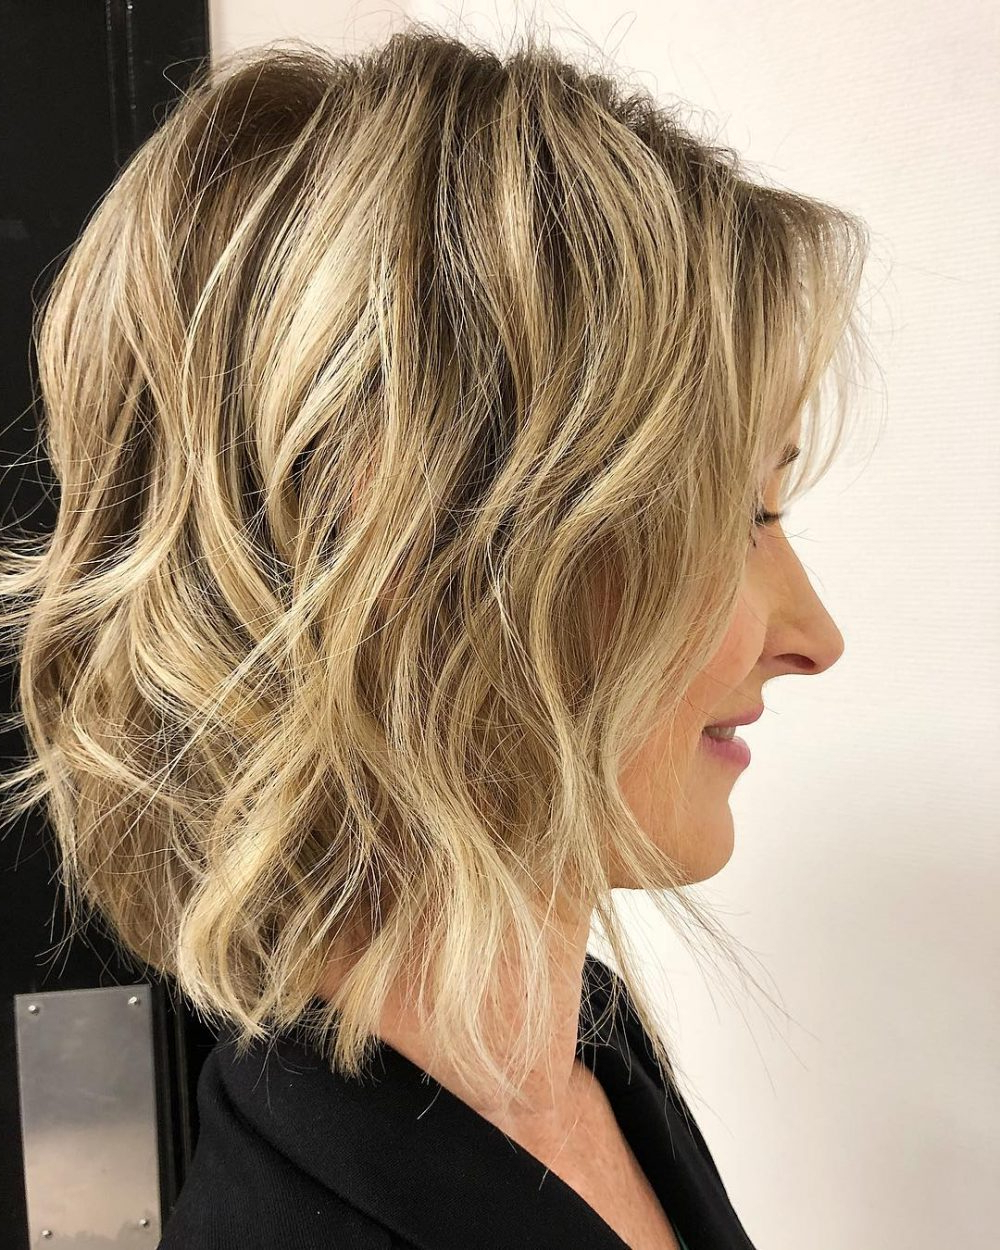 43 Perfect Short Hairstyles For Fine Hair In 2018 Inside Short Haircuts For Voluminous Hair (View 8 of 25)